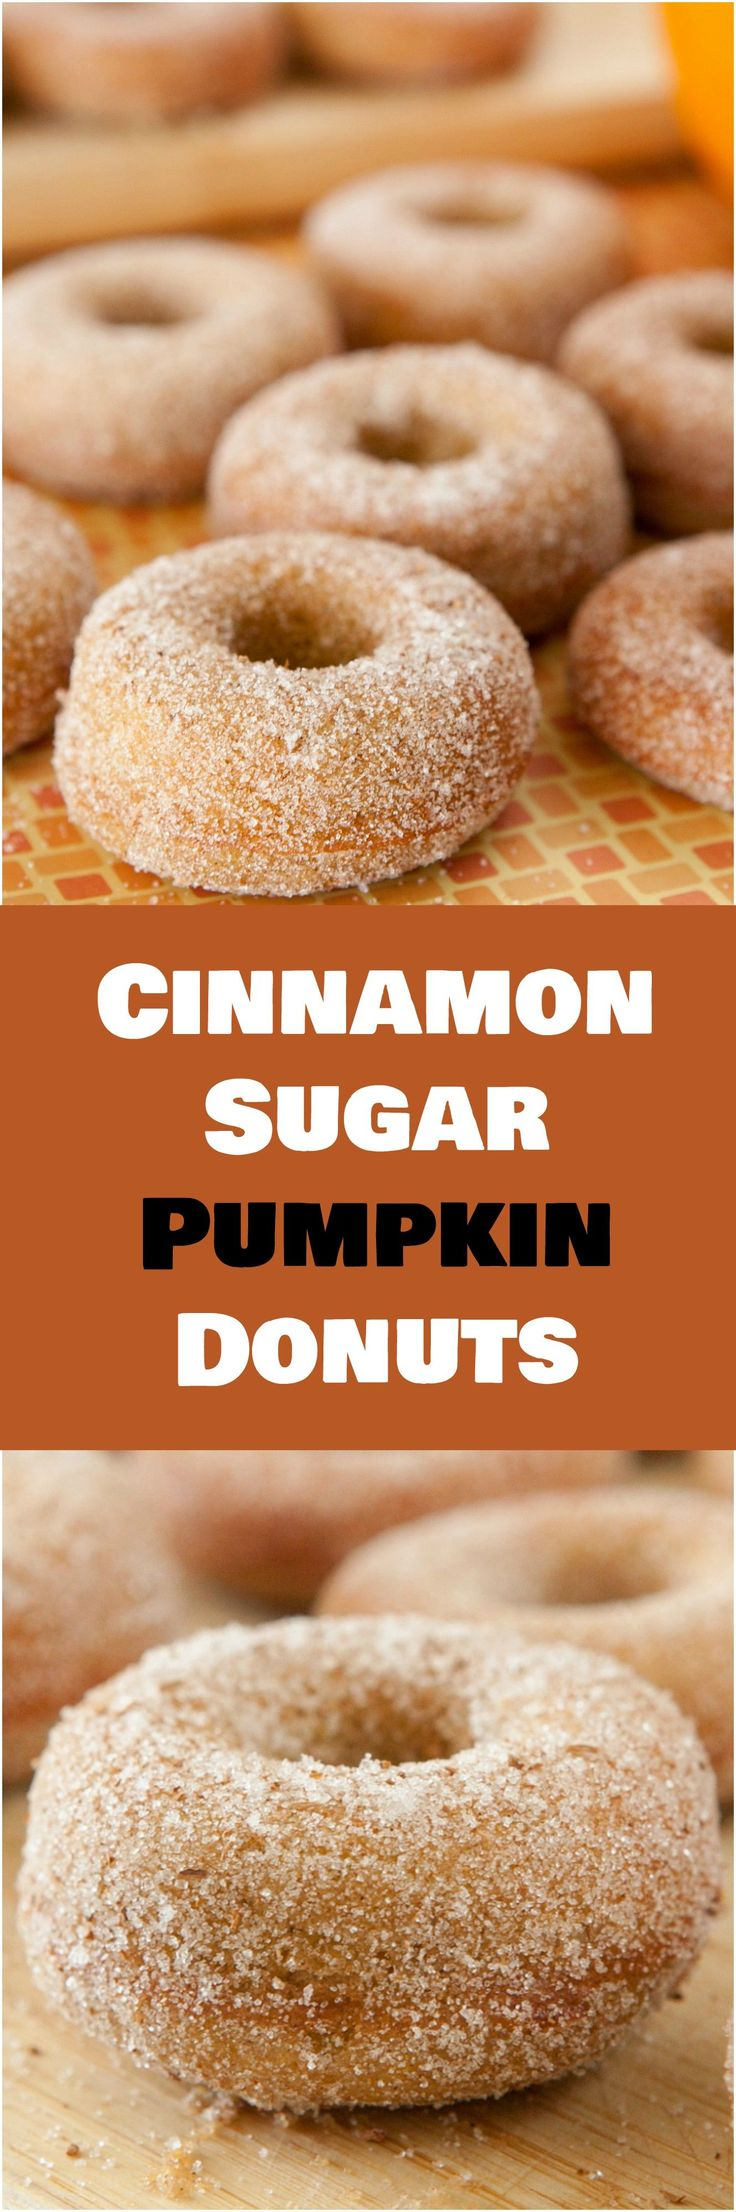 Delicious Cinnamon Sugar Pumpkin Cake Donuts recipe! Makes 1 dozen donuts.